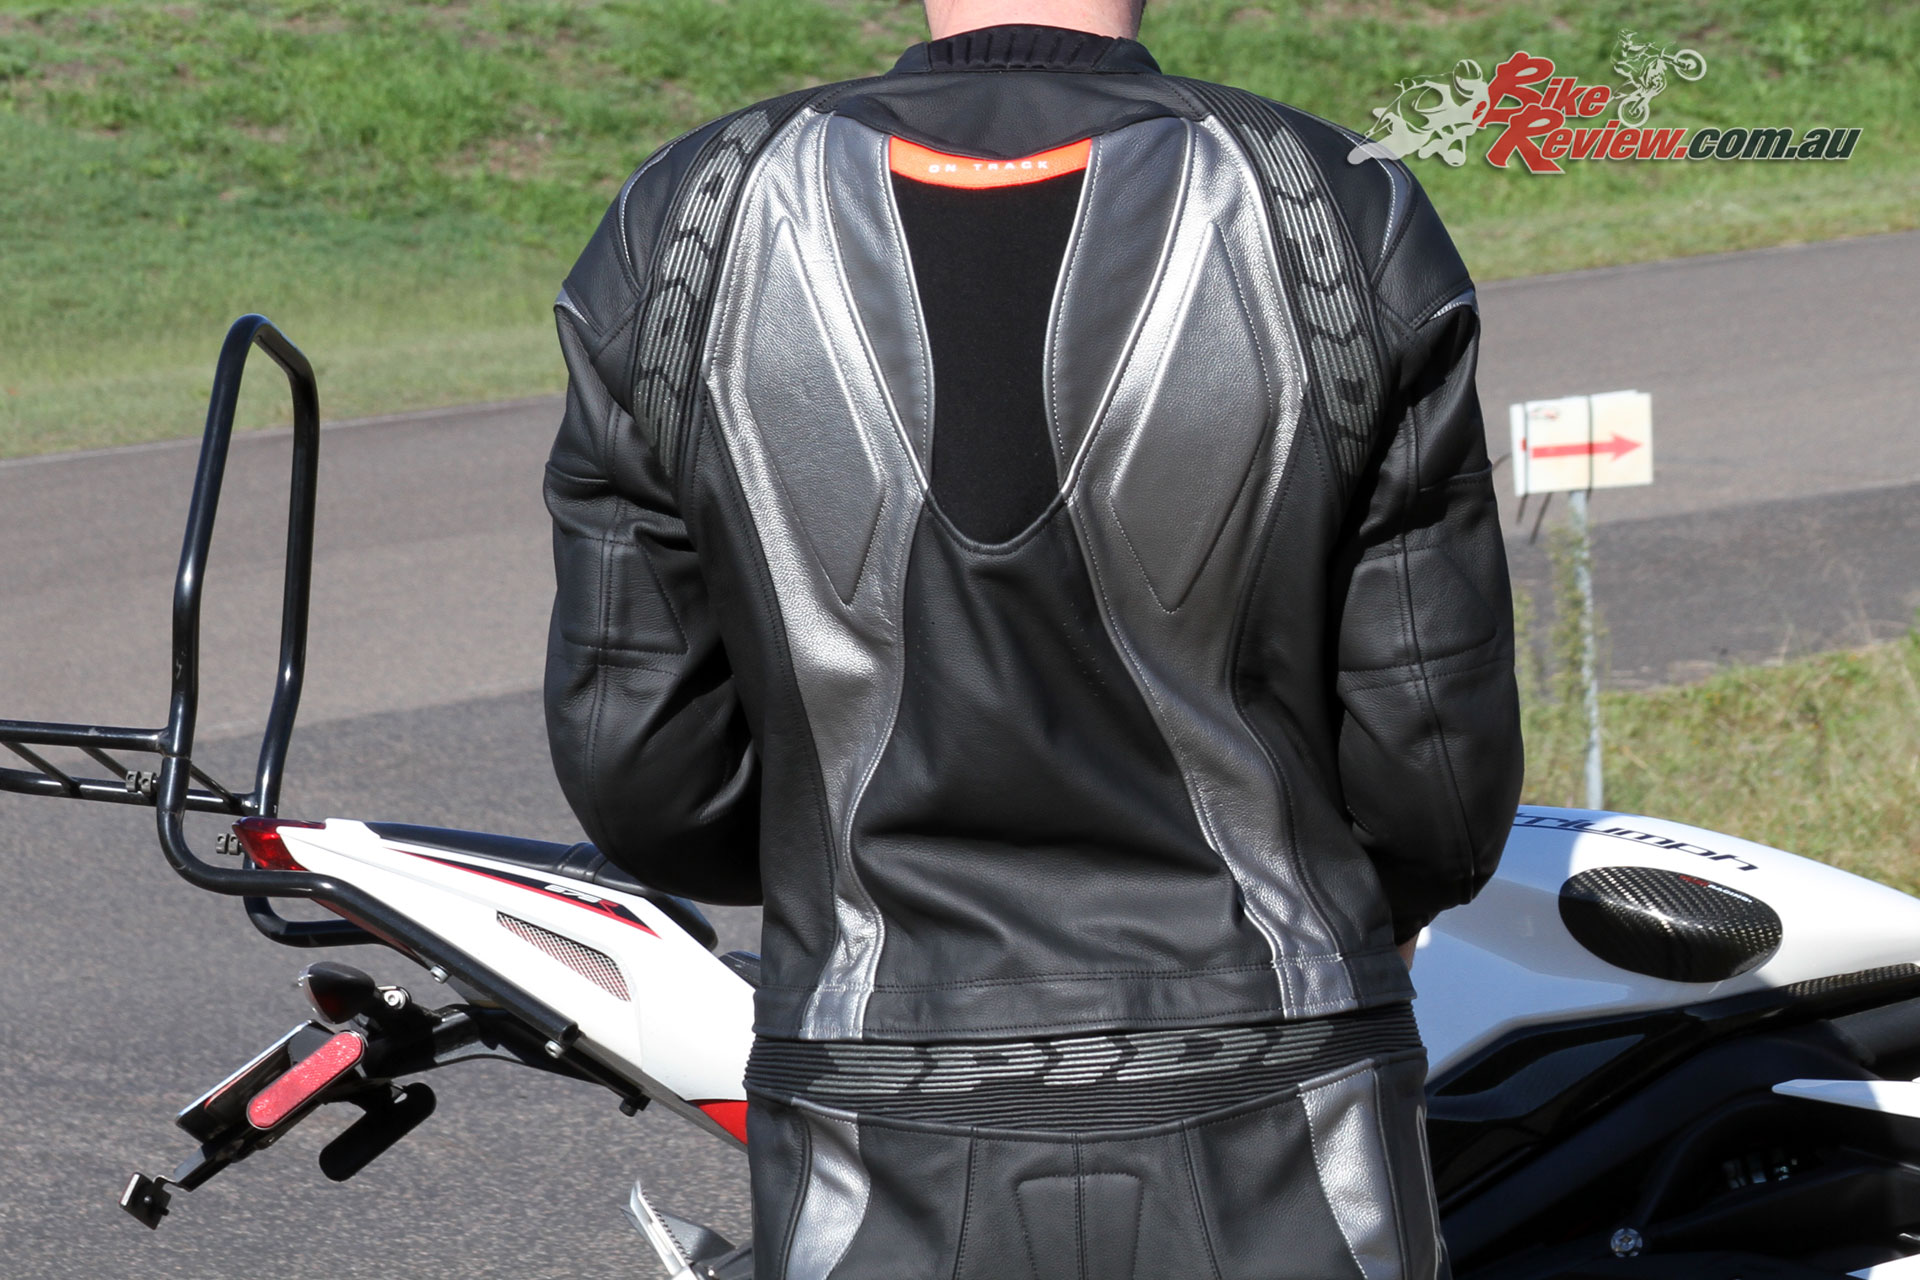 The Spidi Supersport Touring suit offers all day comfort